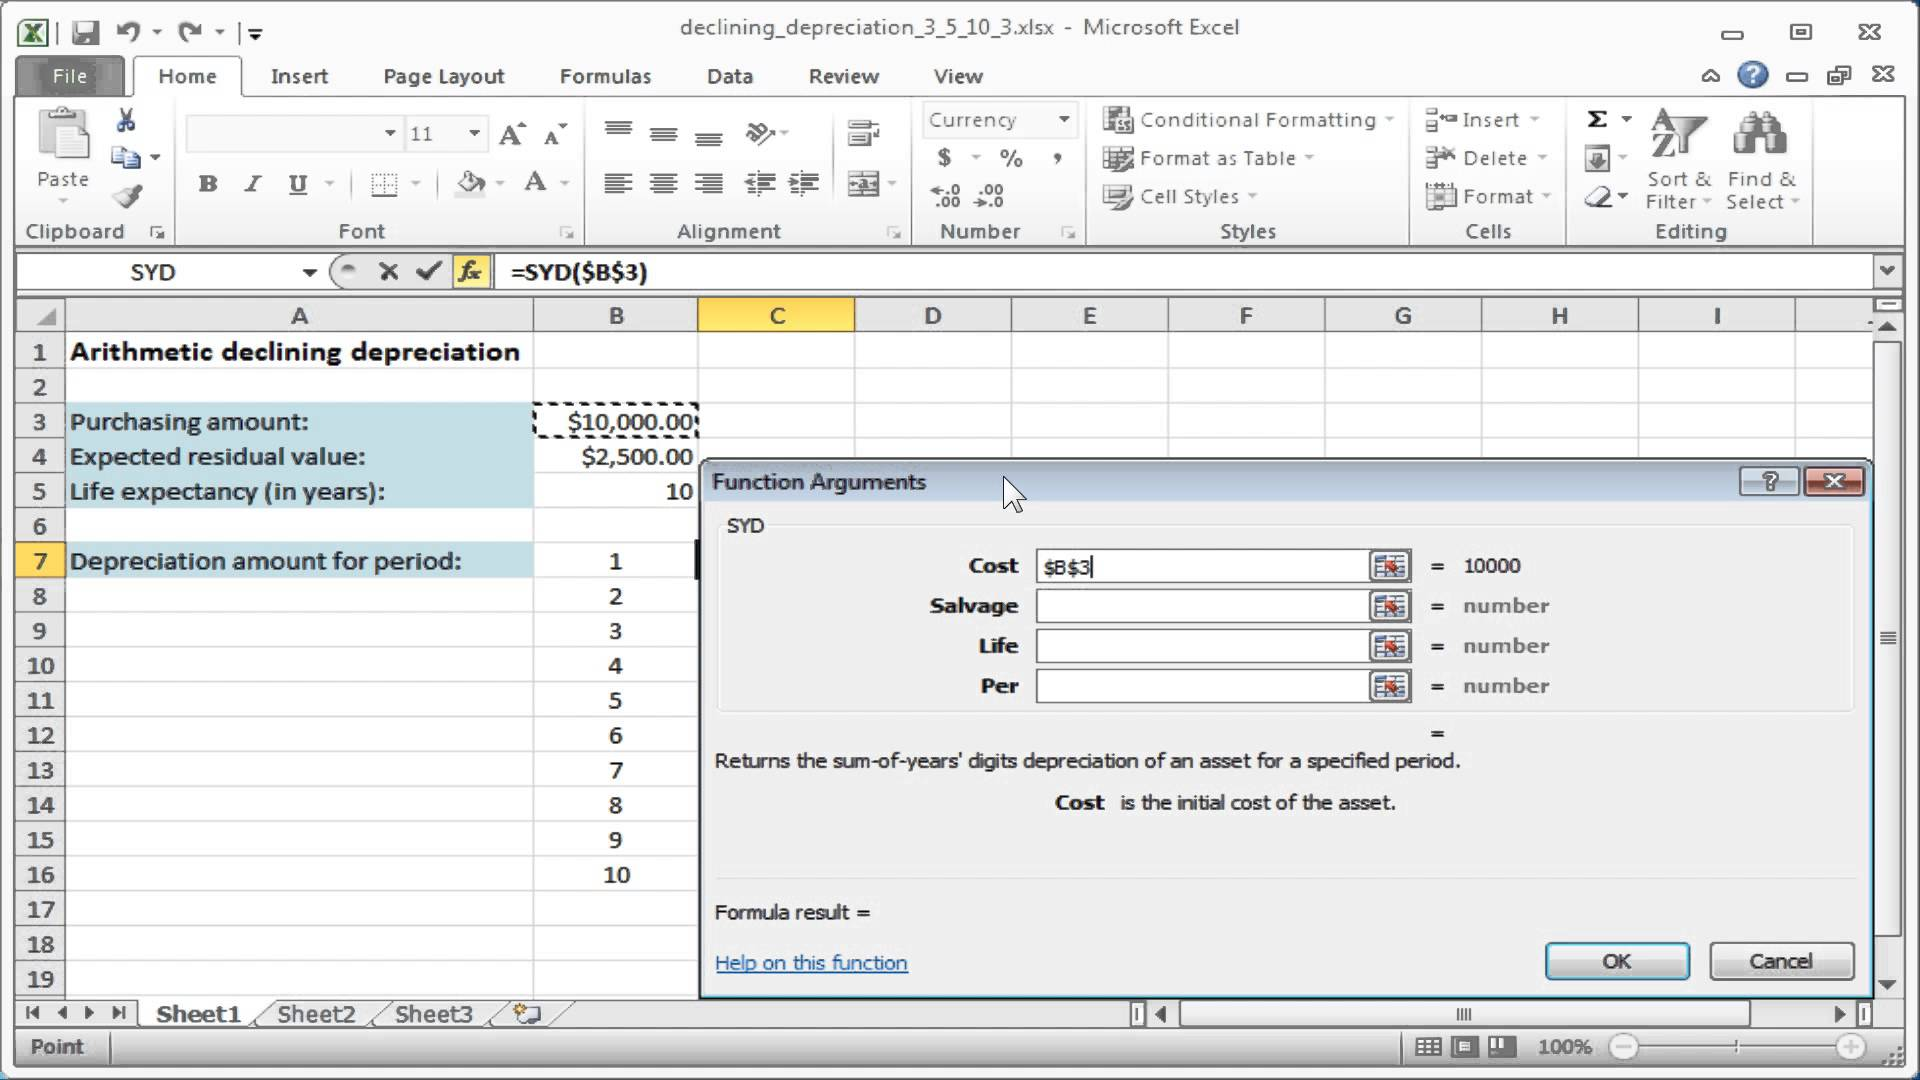 worksheet Vba Worksheet Function Fiercebad Worksheet And Essay – Excel Vba Worksheet Function